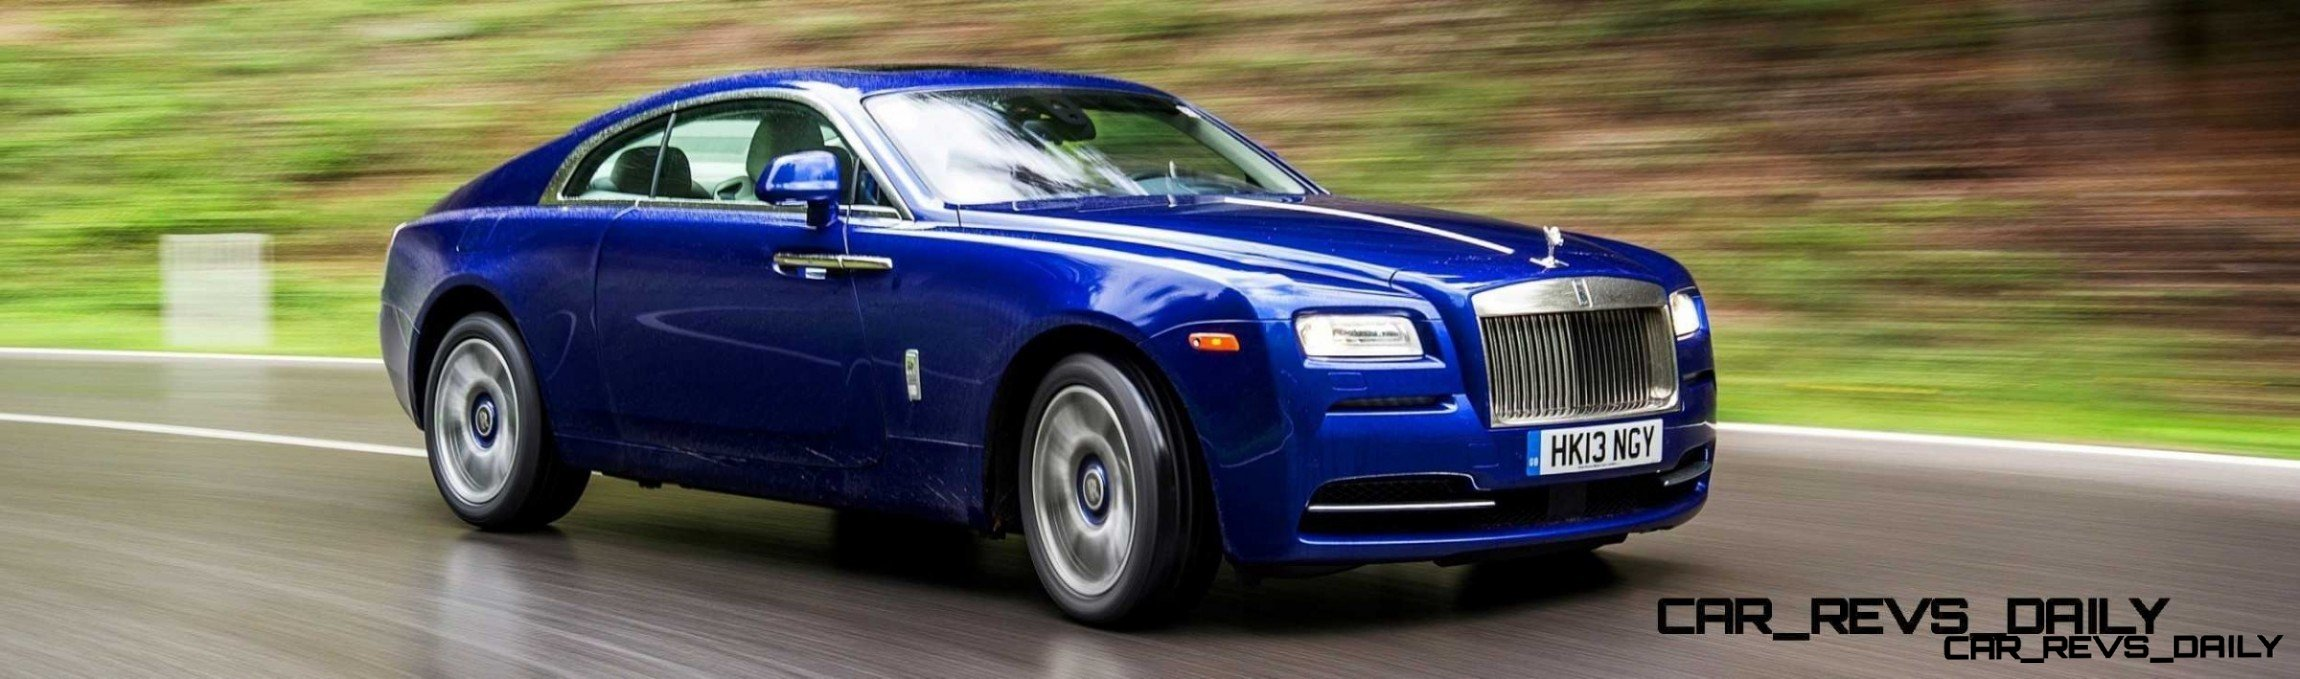 Rolls-Royce Wraith - Color Showcase - Salamanca Blue6